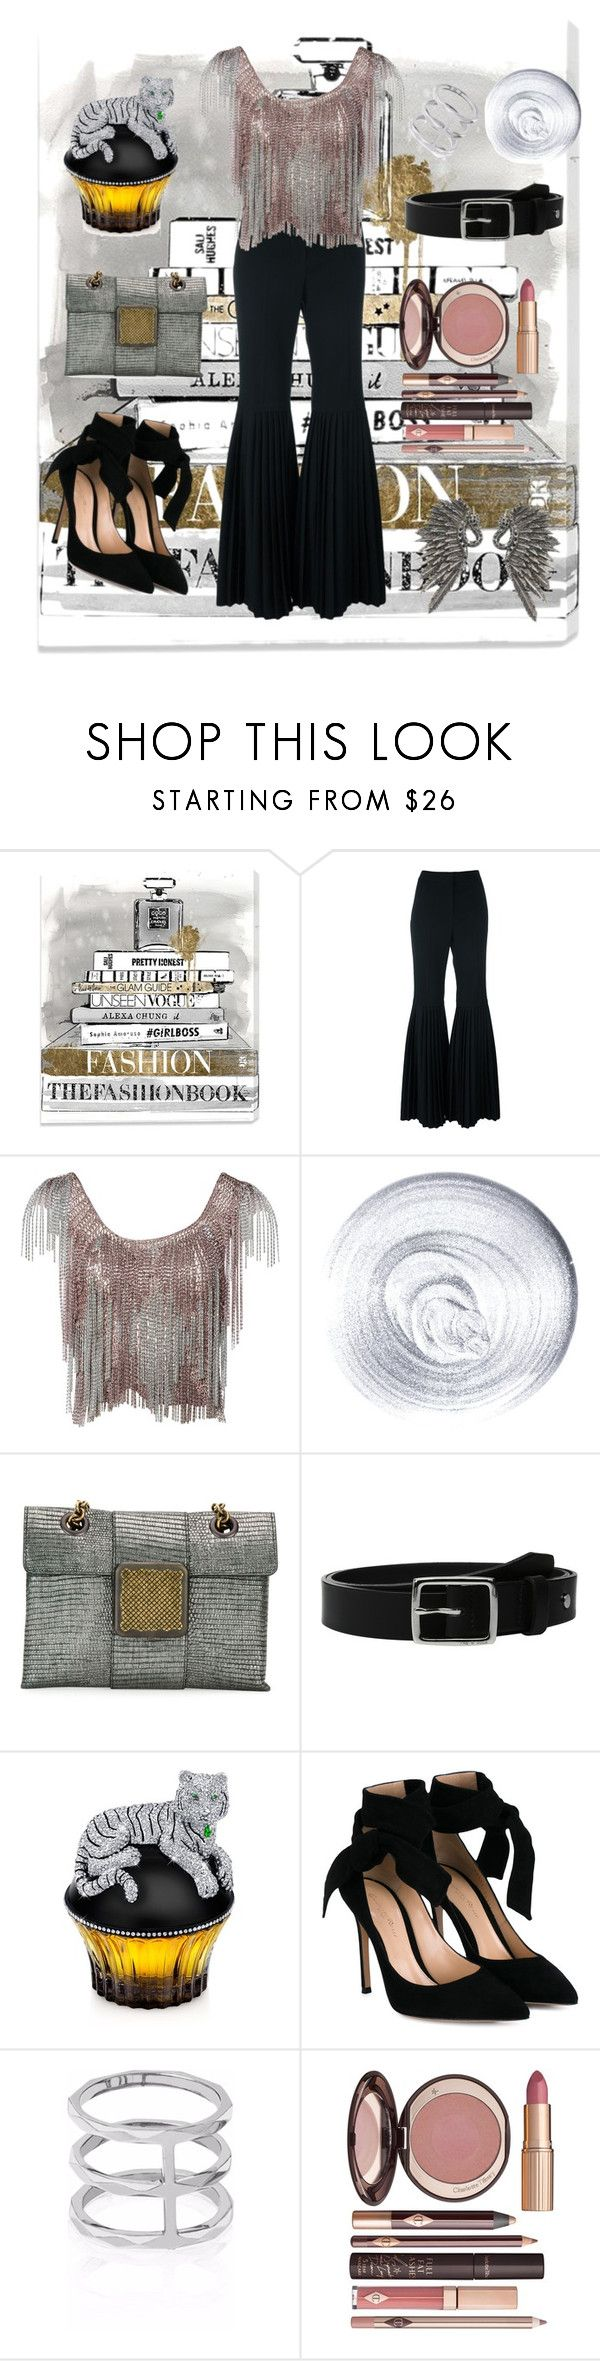 """""""Chains"""" by spookie1 ❤ liked on Polyvore featuring Oliver Gal Artist Co., STELLA McCARTNEY, Azzaro, Guerlain, Bottega Veneta, rag & bone, House of Sillage, Gianvito Rossi, Edge of Ember and Charlotte Tilbury"""